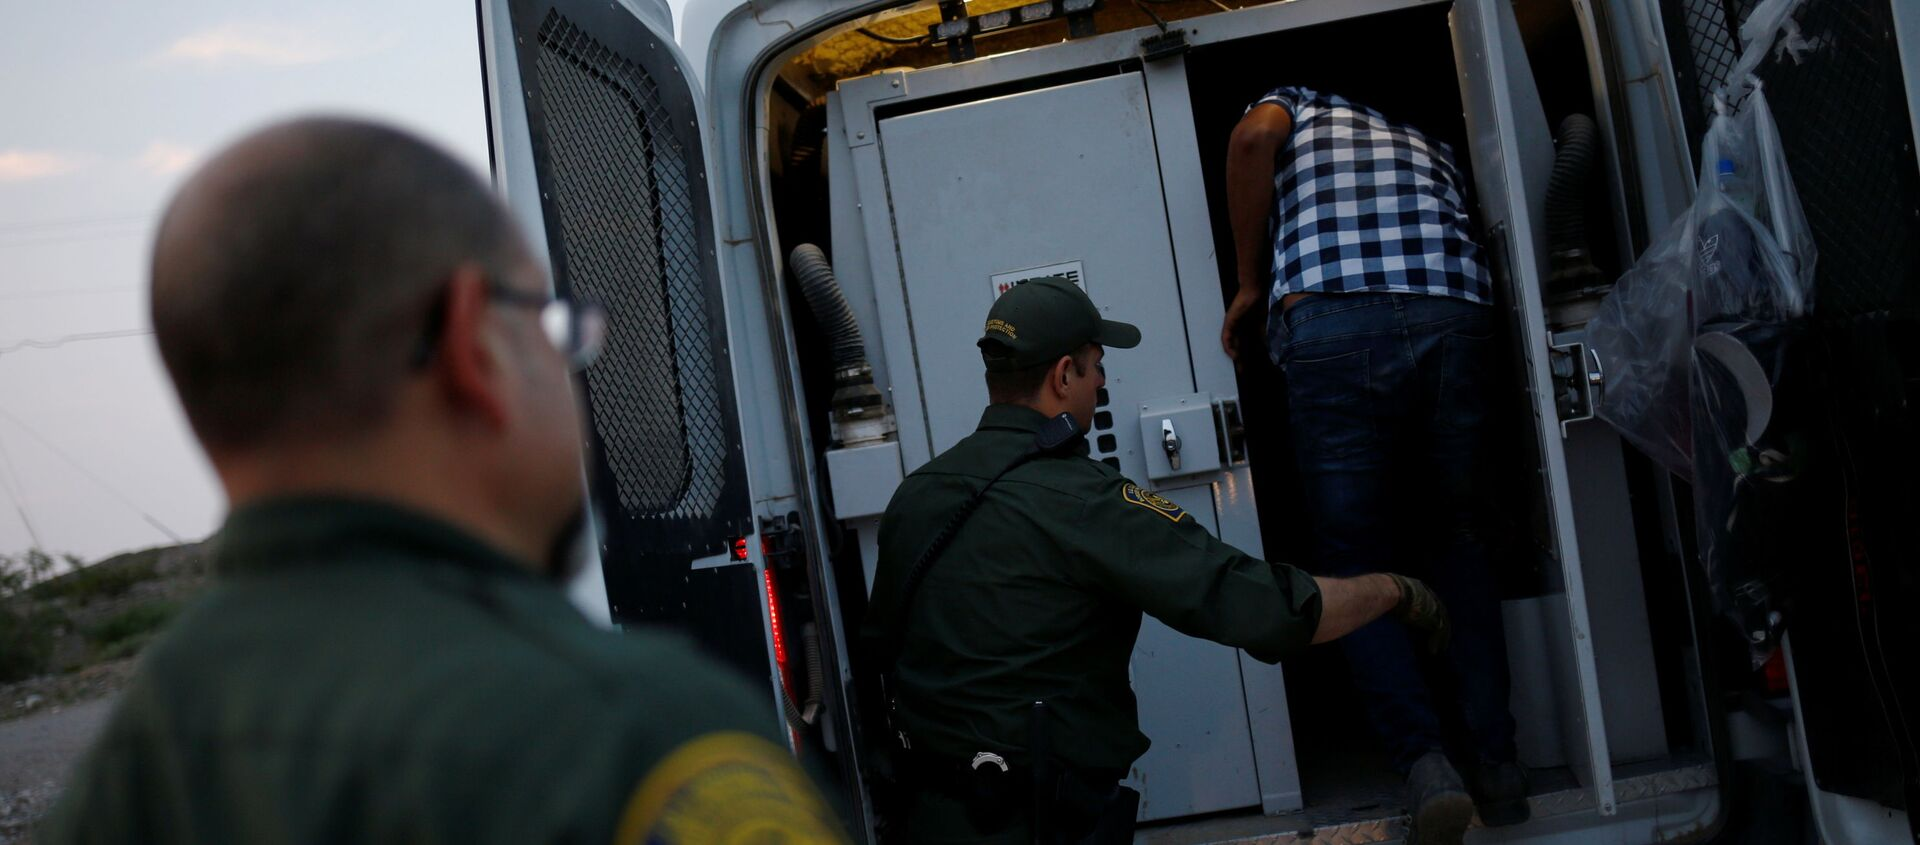 A migrant from Central America is detained by U.S. Border Patrol agents after crossing into the United States from Mexico, in Sunland Park, New Mexico, U.S., July 22, 2021 - Sputnik International, 1920